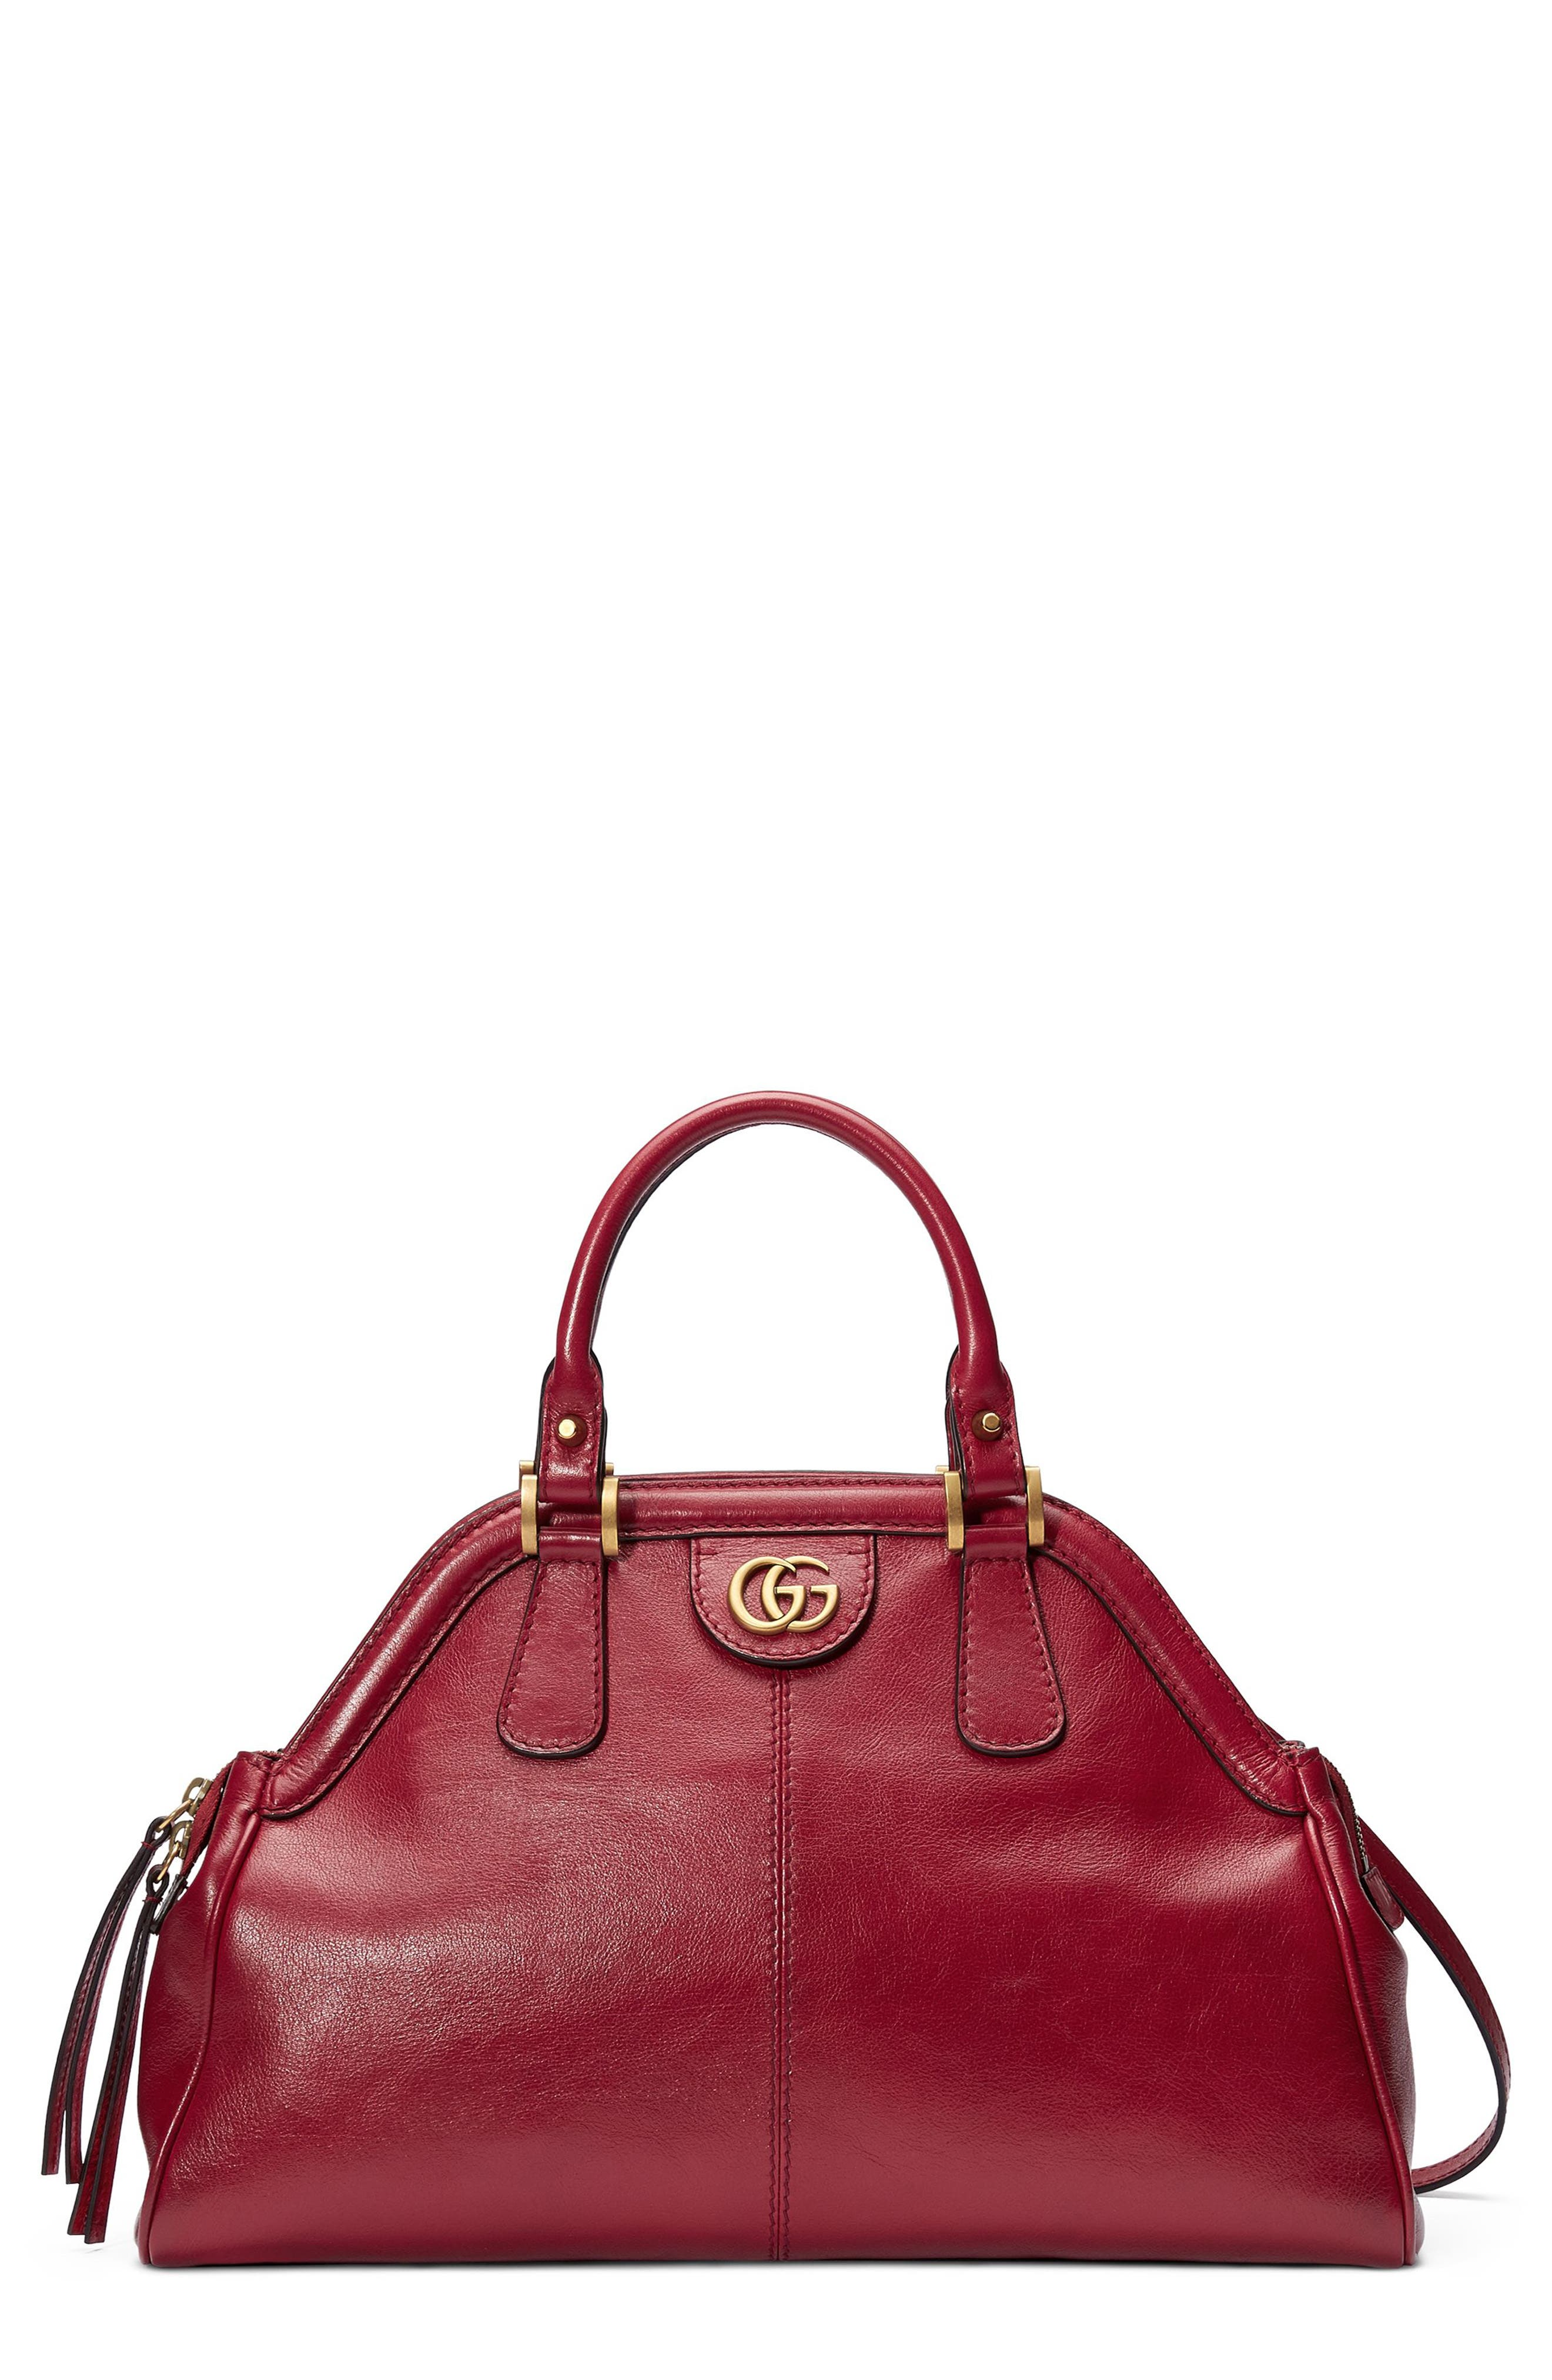 Medium RE(BELLE) Leather Satchel,                             Main thumbnail 1, color,                             Romantic Cerise